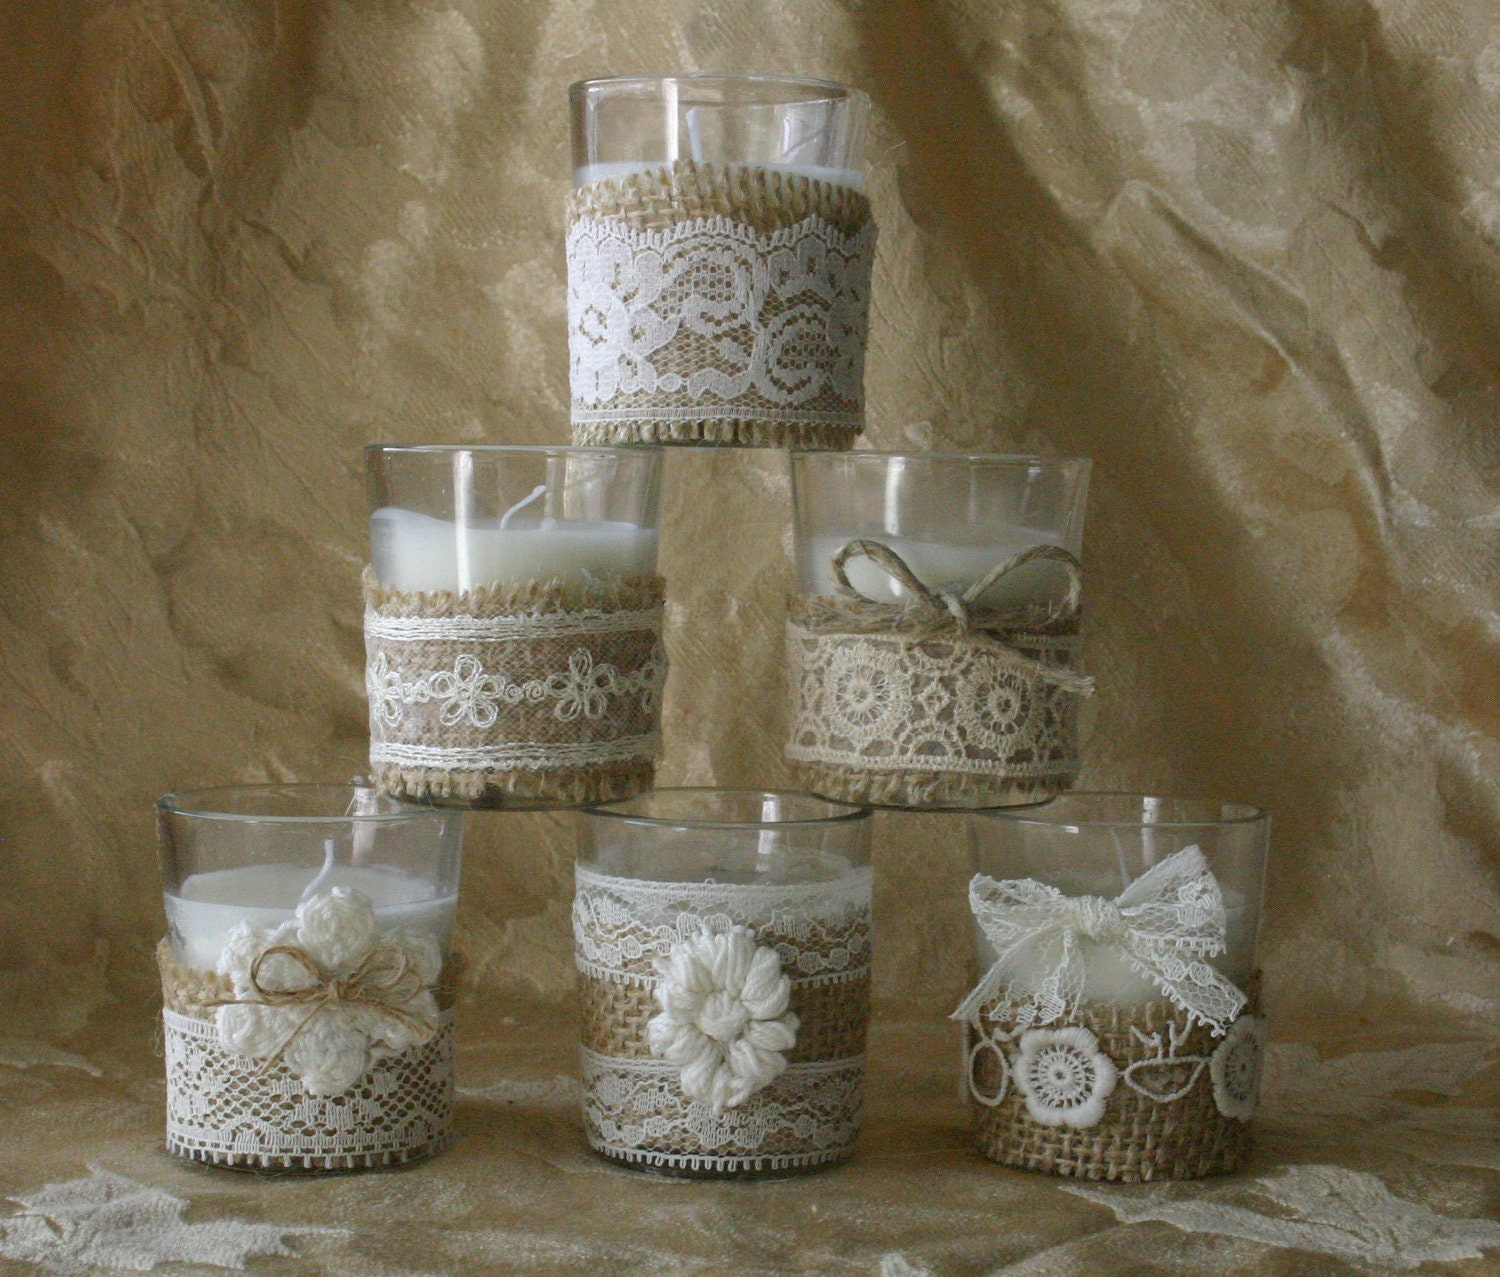 Vintage Wedding Decorations: Burlap And Lace Wedding Votives Wedding Tea By Bannerbanquet